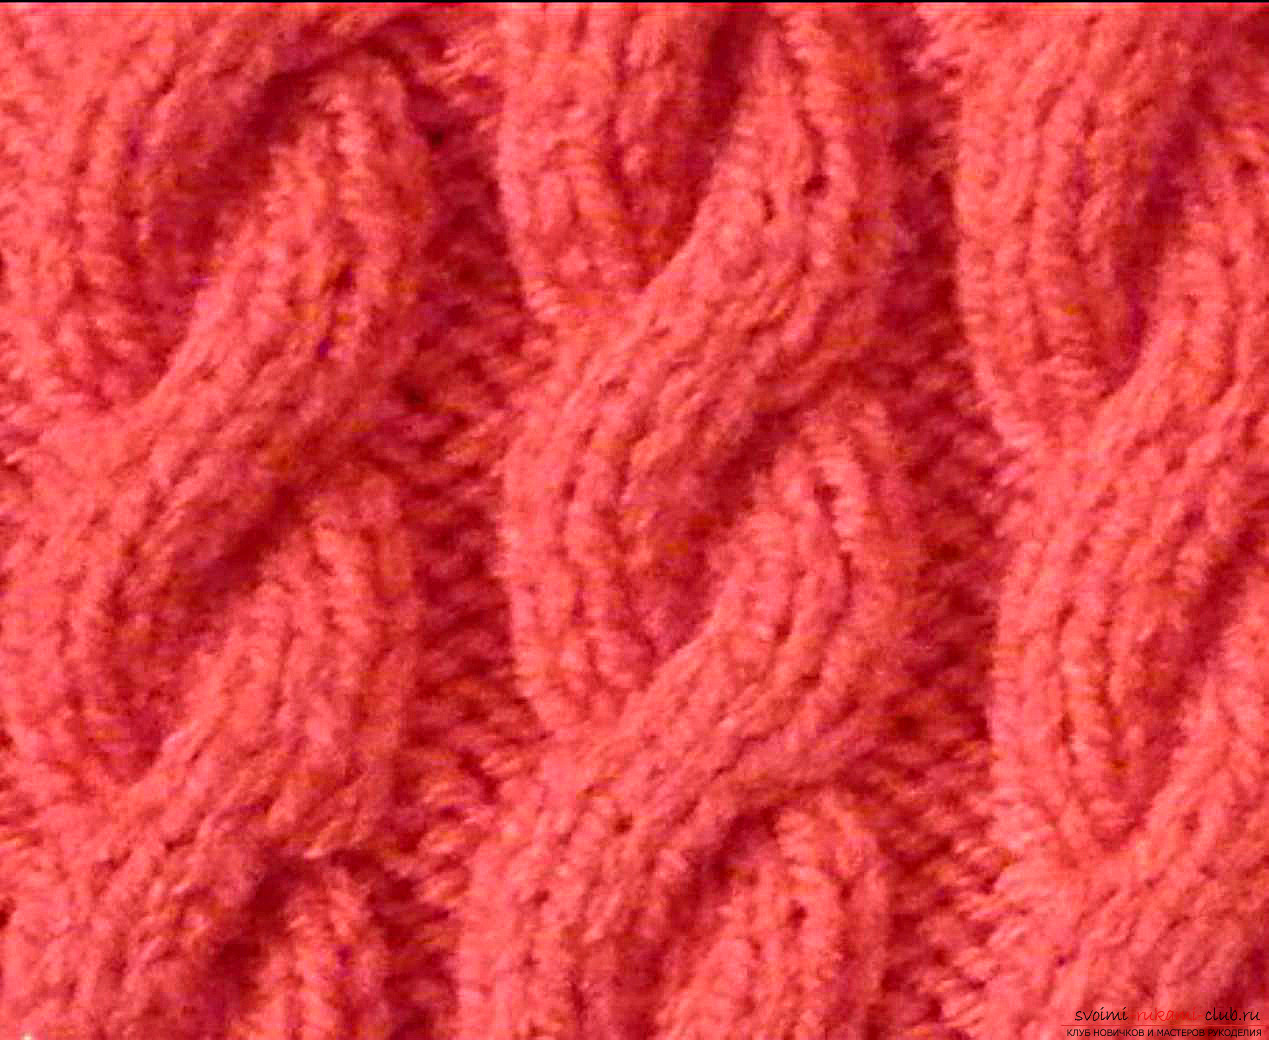 knitted patterns of braid. Photo # 2